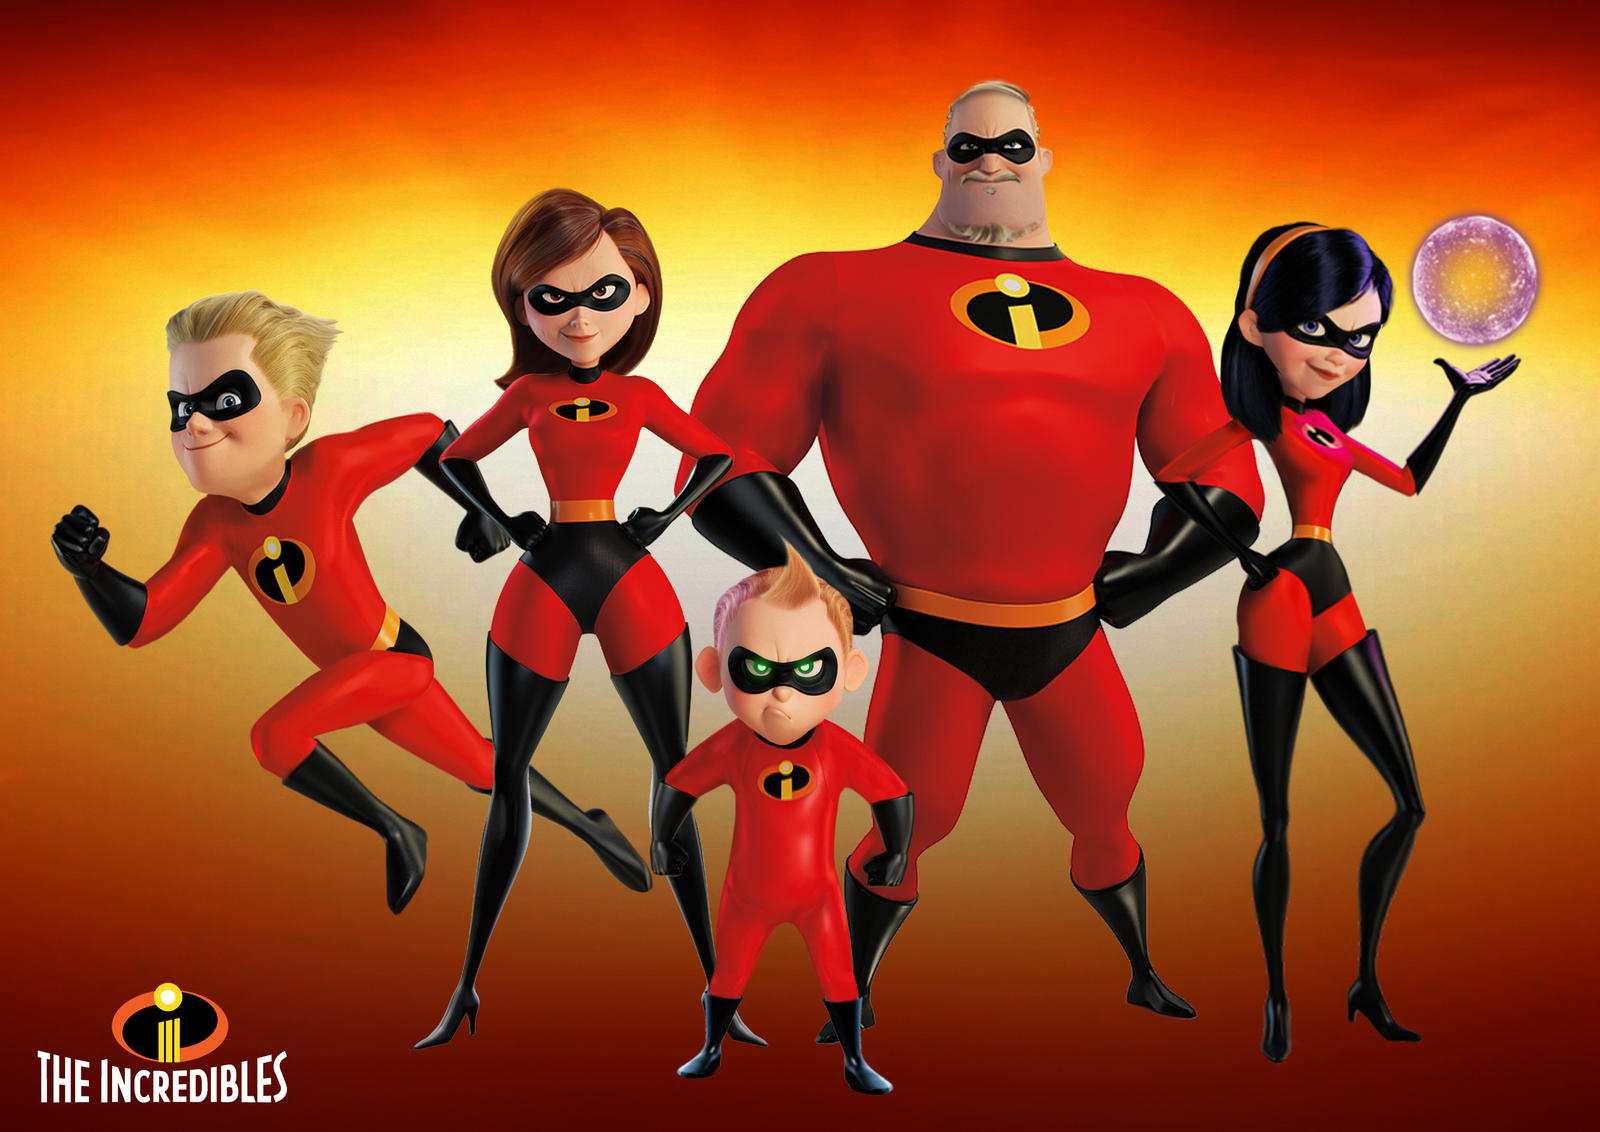 The Incredibles Duology (2004-2018) Dual Audio [Hindi + English] | x265 10bit HEVC Bluray | 4K | 1080p | 720p